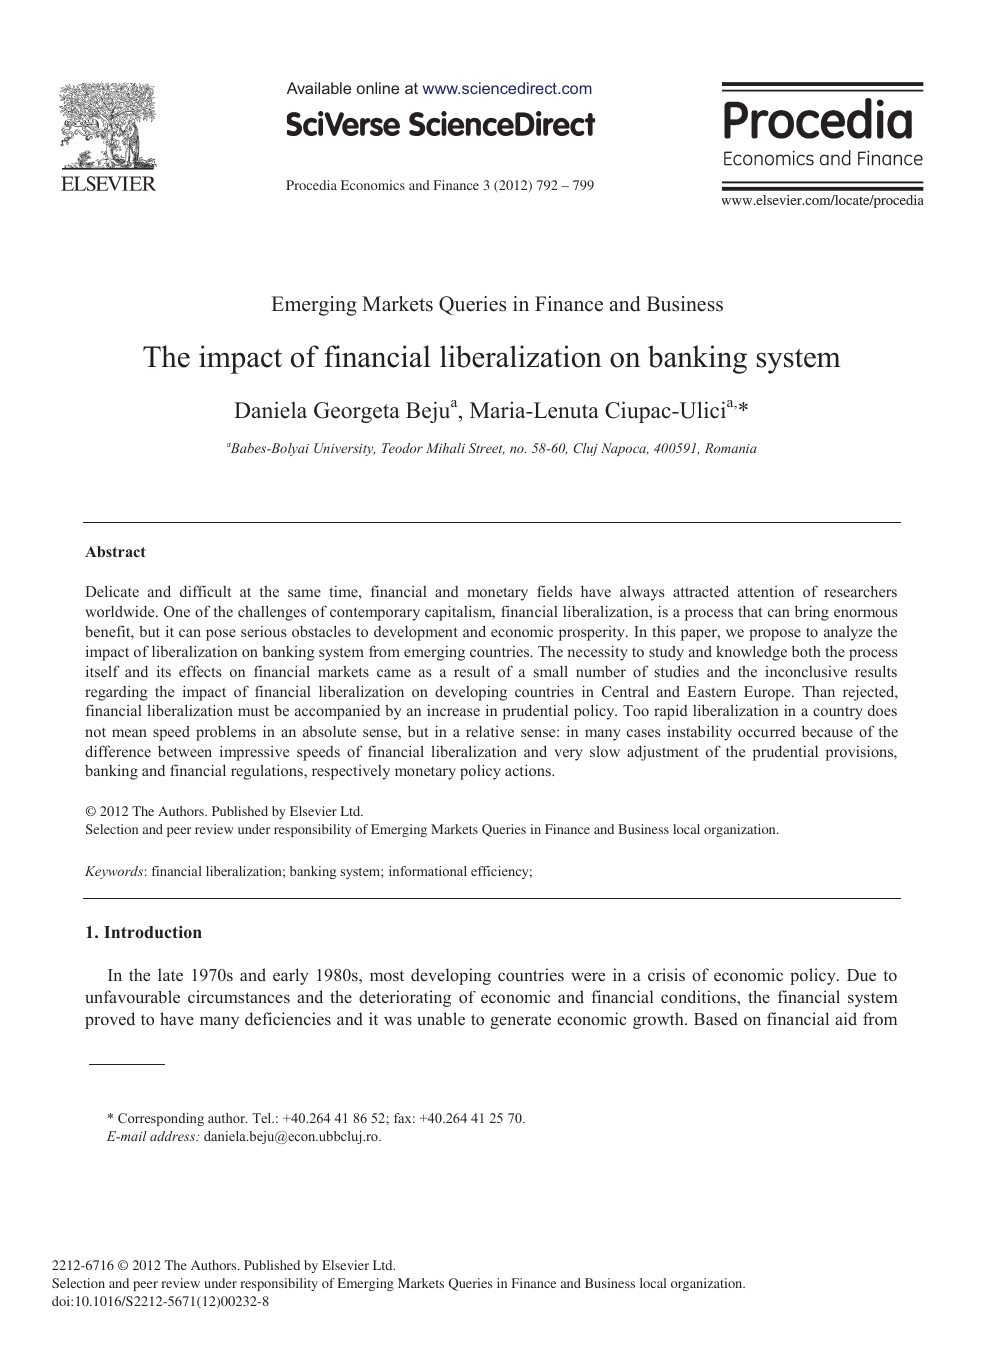 007 Research Paper Abstract Of In Finance Awful Full